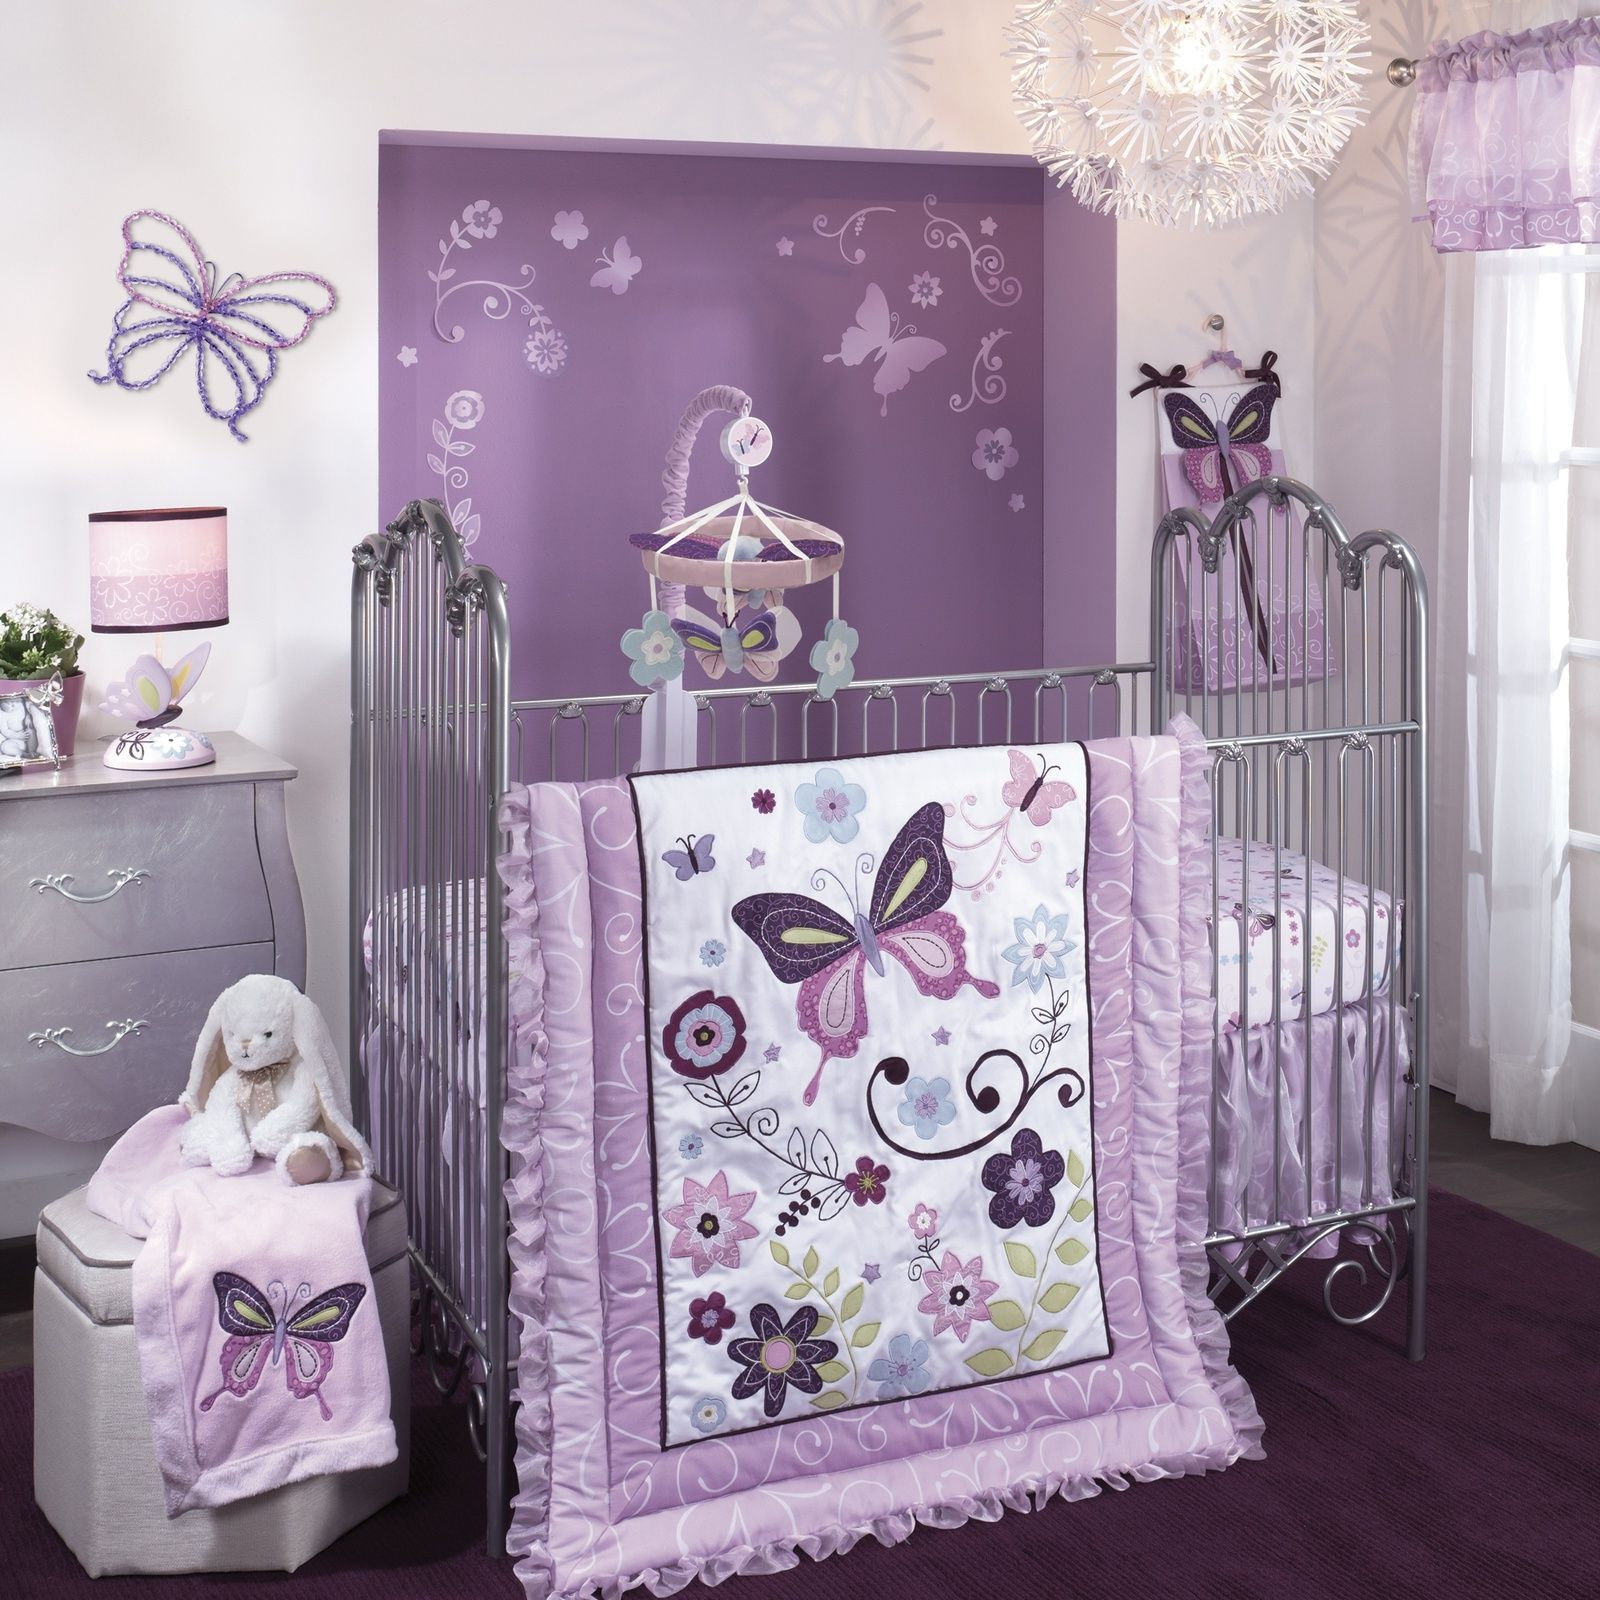 Bedroom cozy purple theme girl nursery ideas lambs and Baby girl room ideas